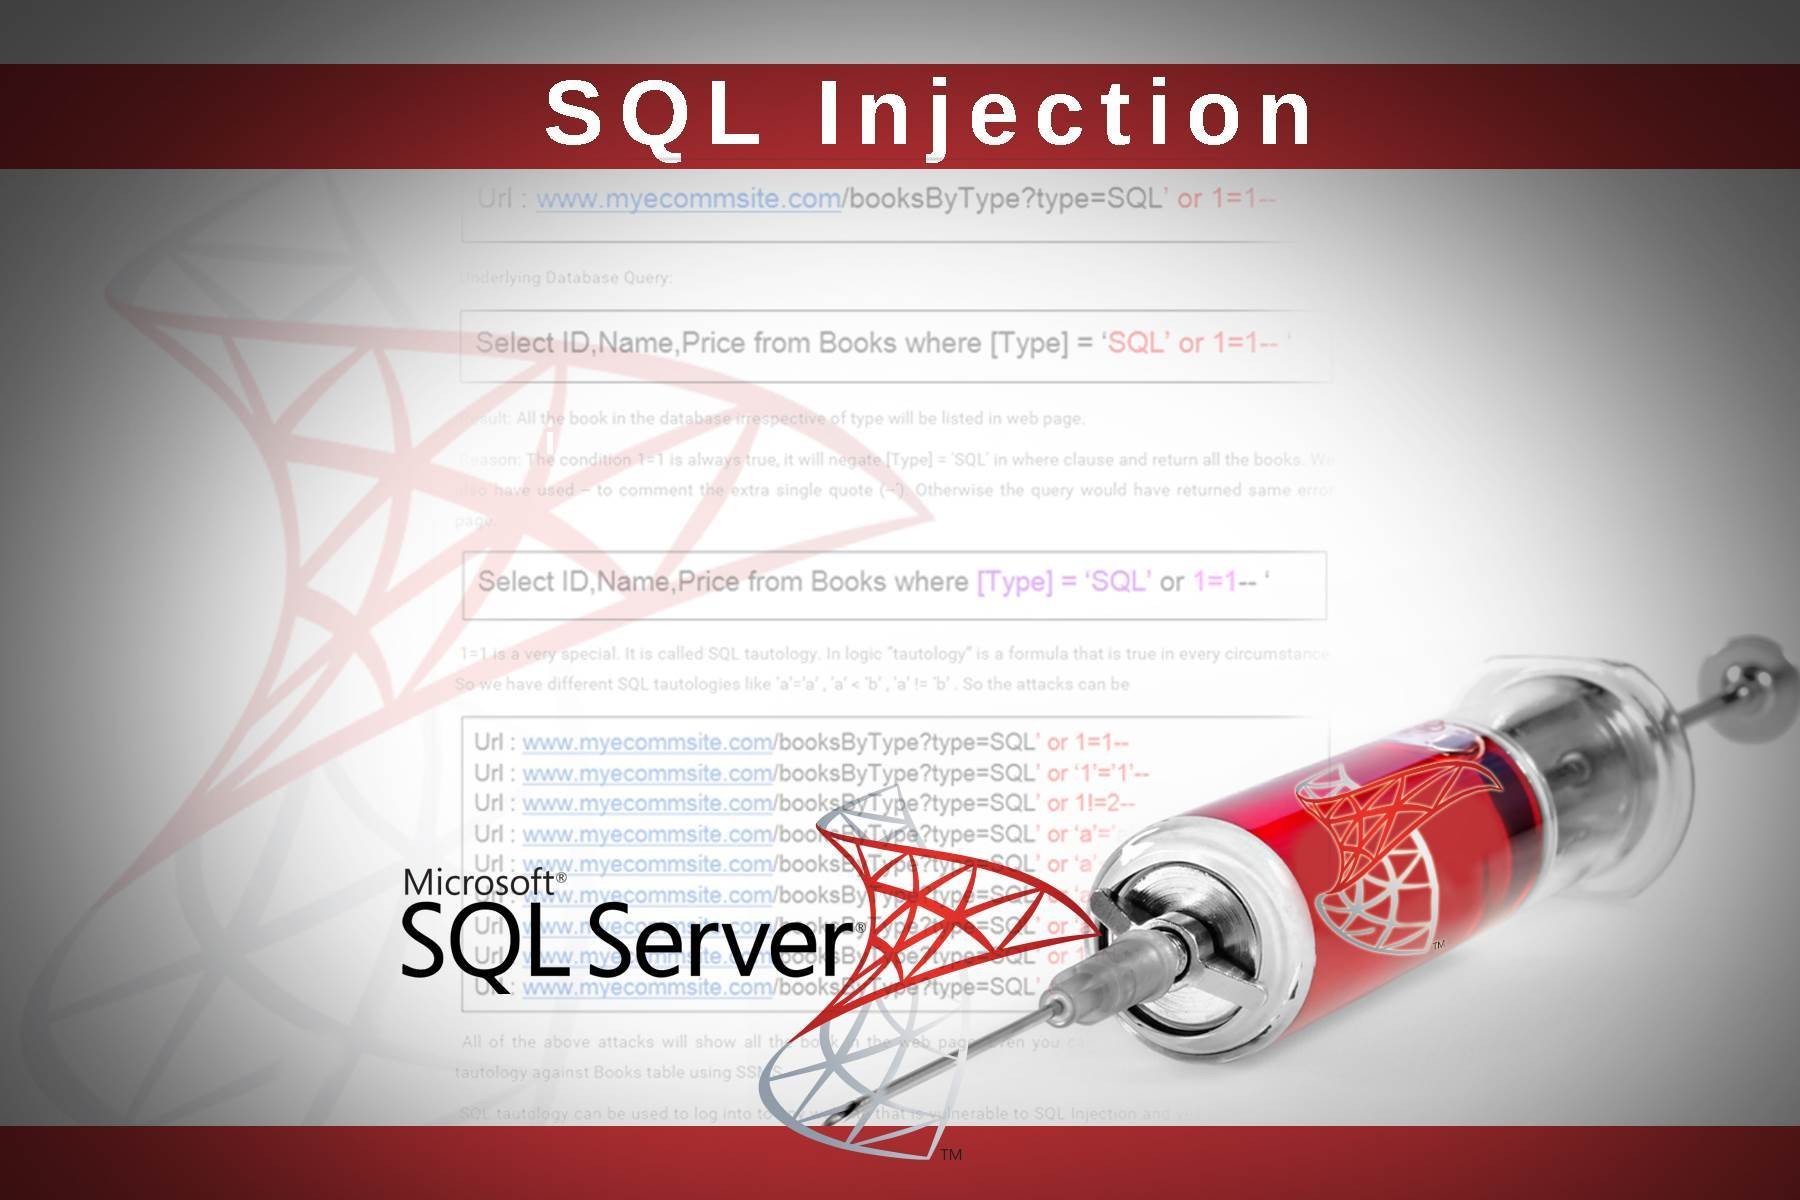 SQL injection: attacks and defenses - Stanford University